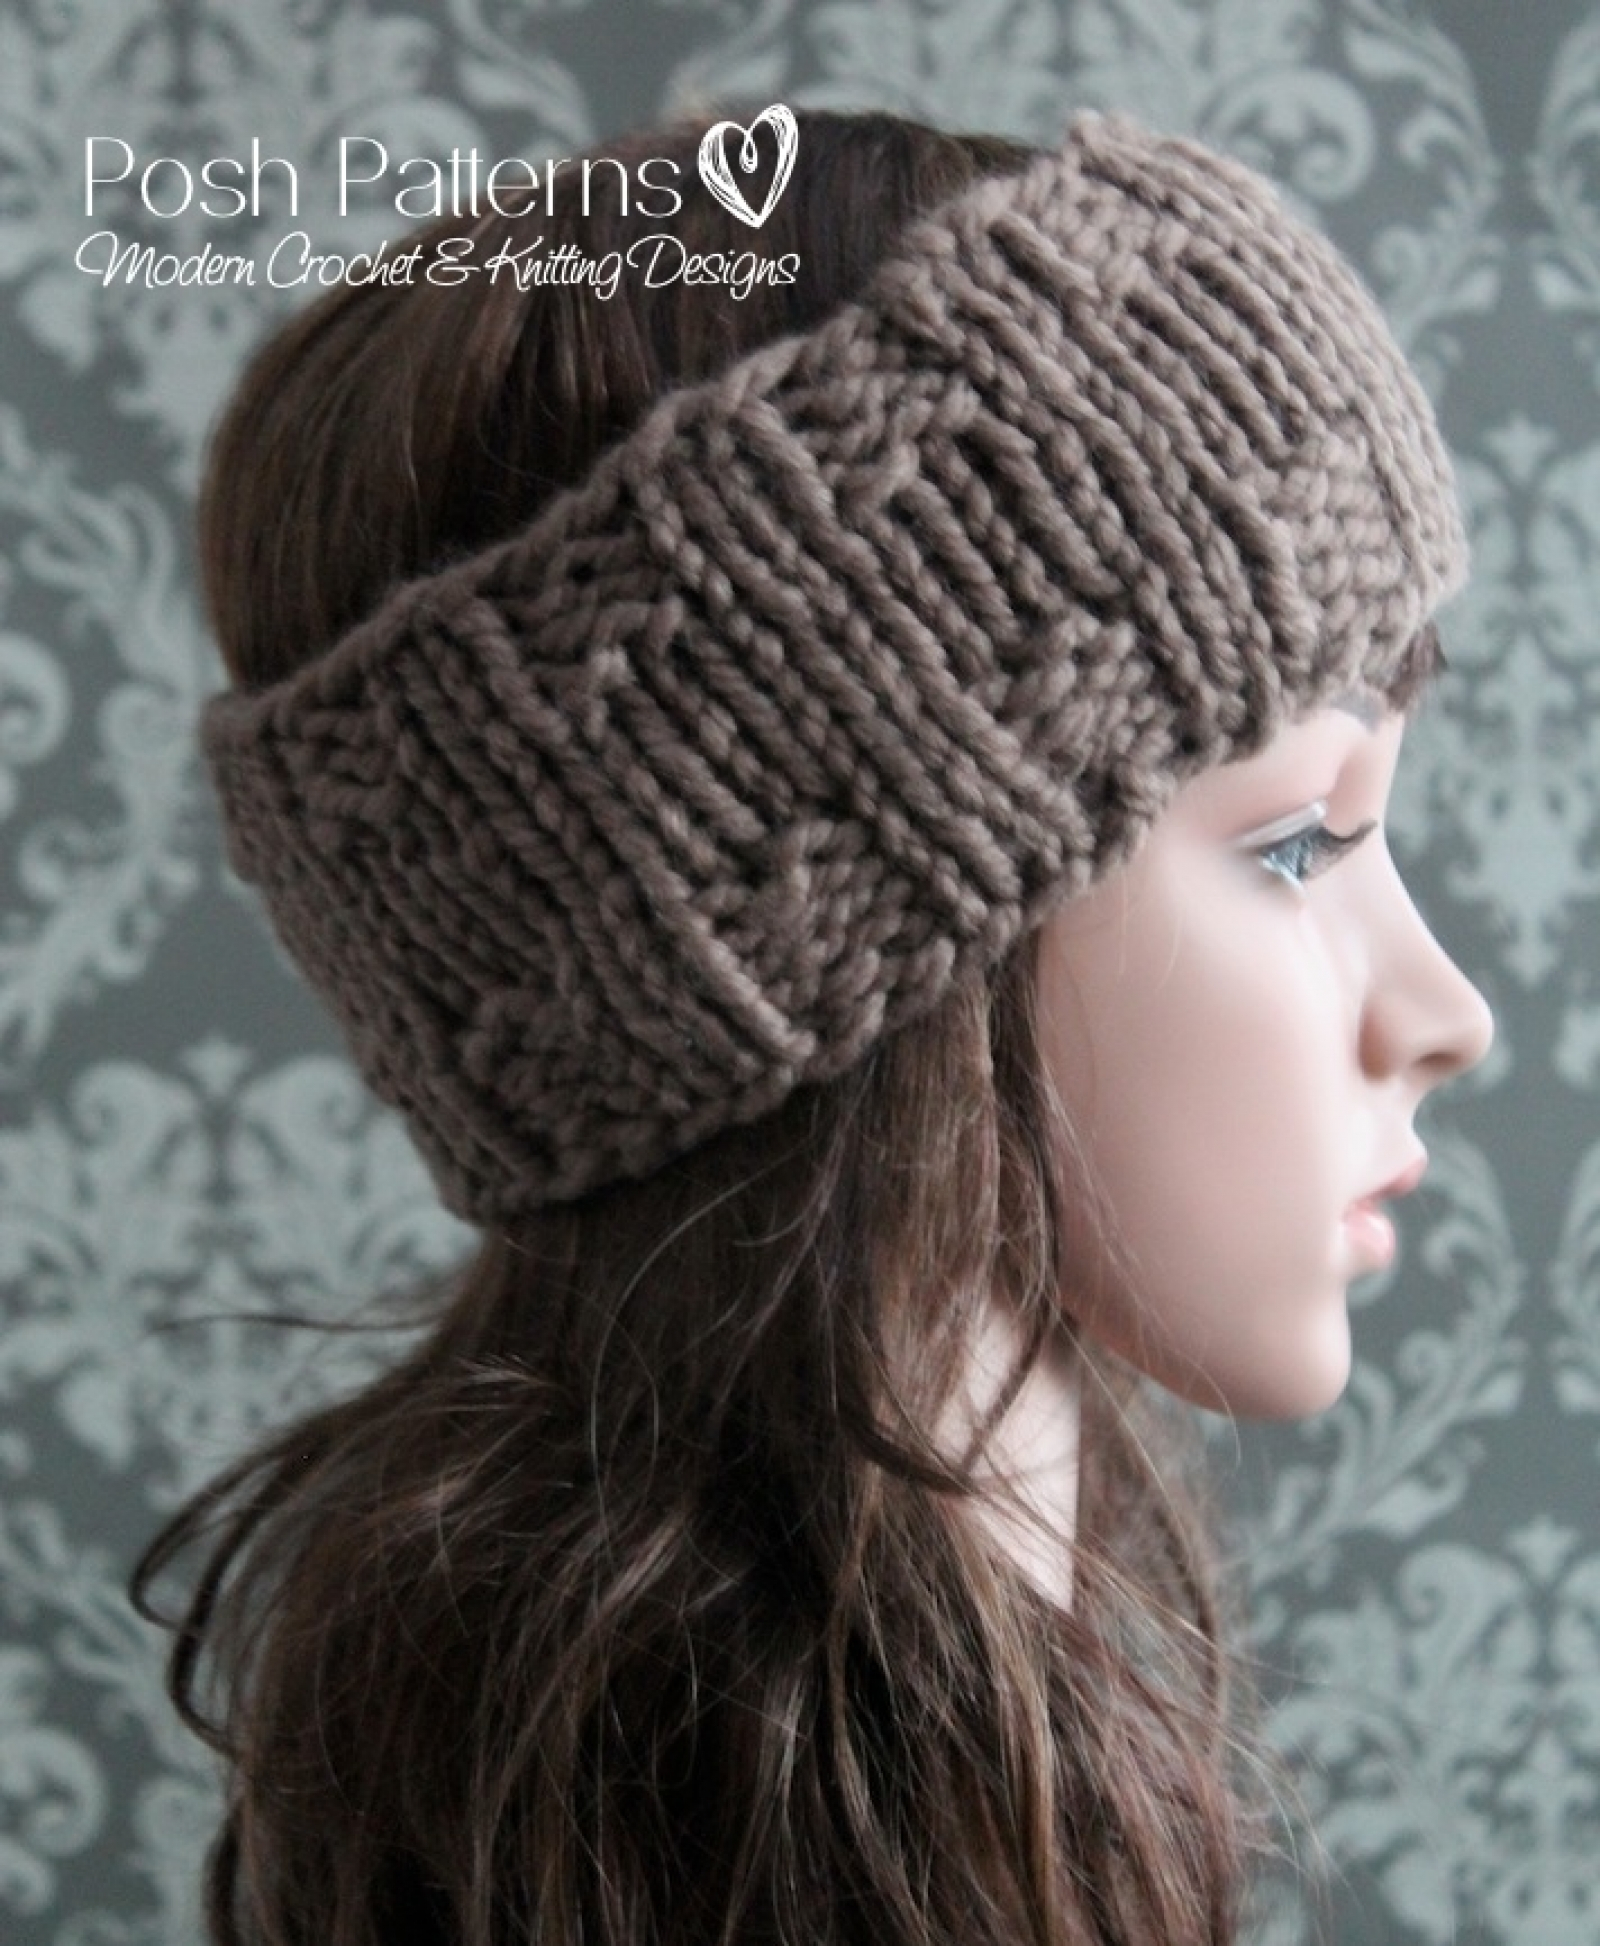 Knit Headband Pattern With Flower Headband Knitting Pattern Knit Ear Warmer Pattern